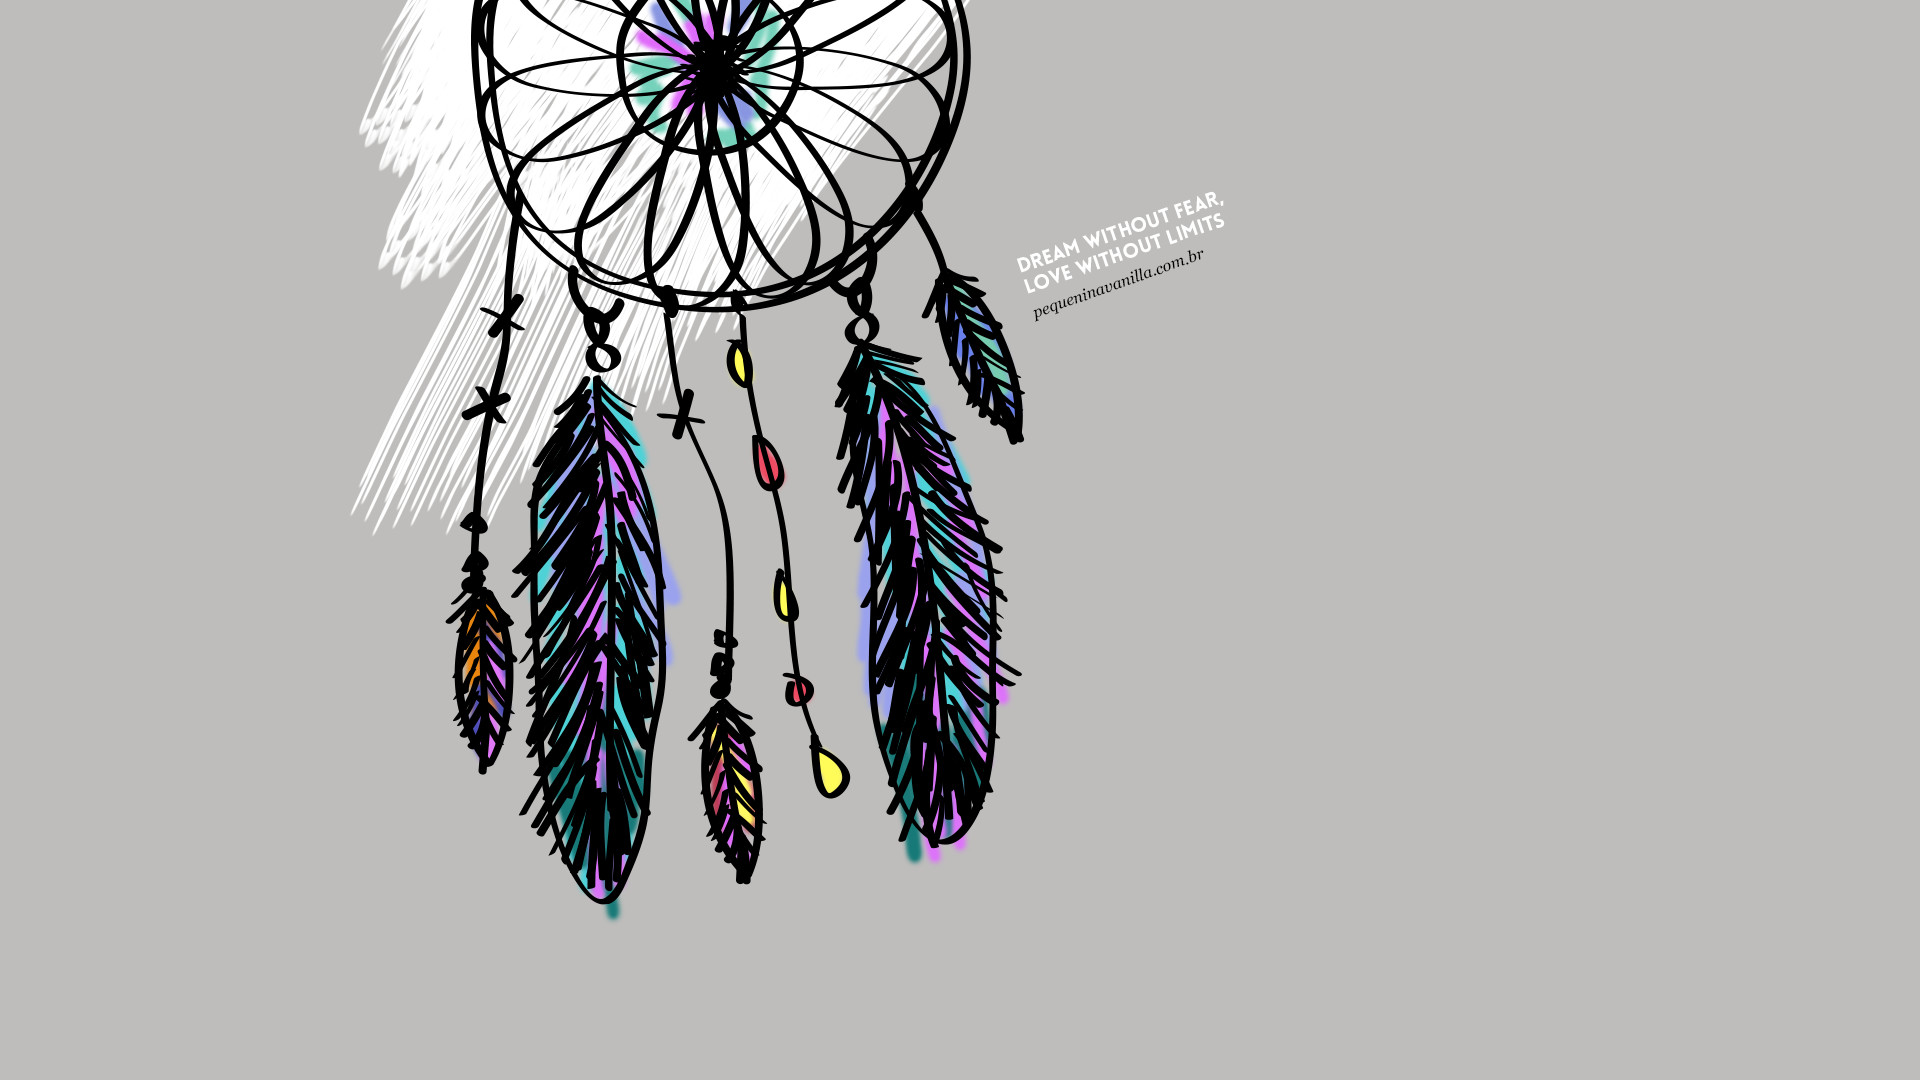 1920x1080 Grey illustrated dreamcatcher Dream Love desktop wallpaper background |  iPhone and desktop wallpapers | Pinterest | Wallpaper backgrounds and  Wallpaper